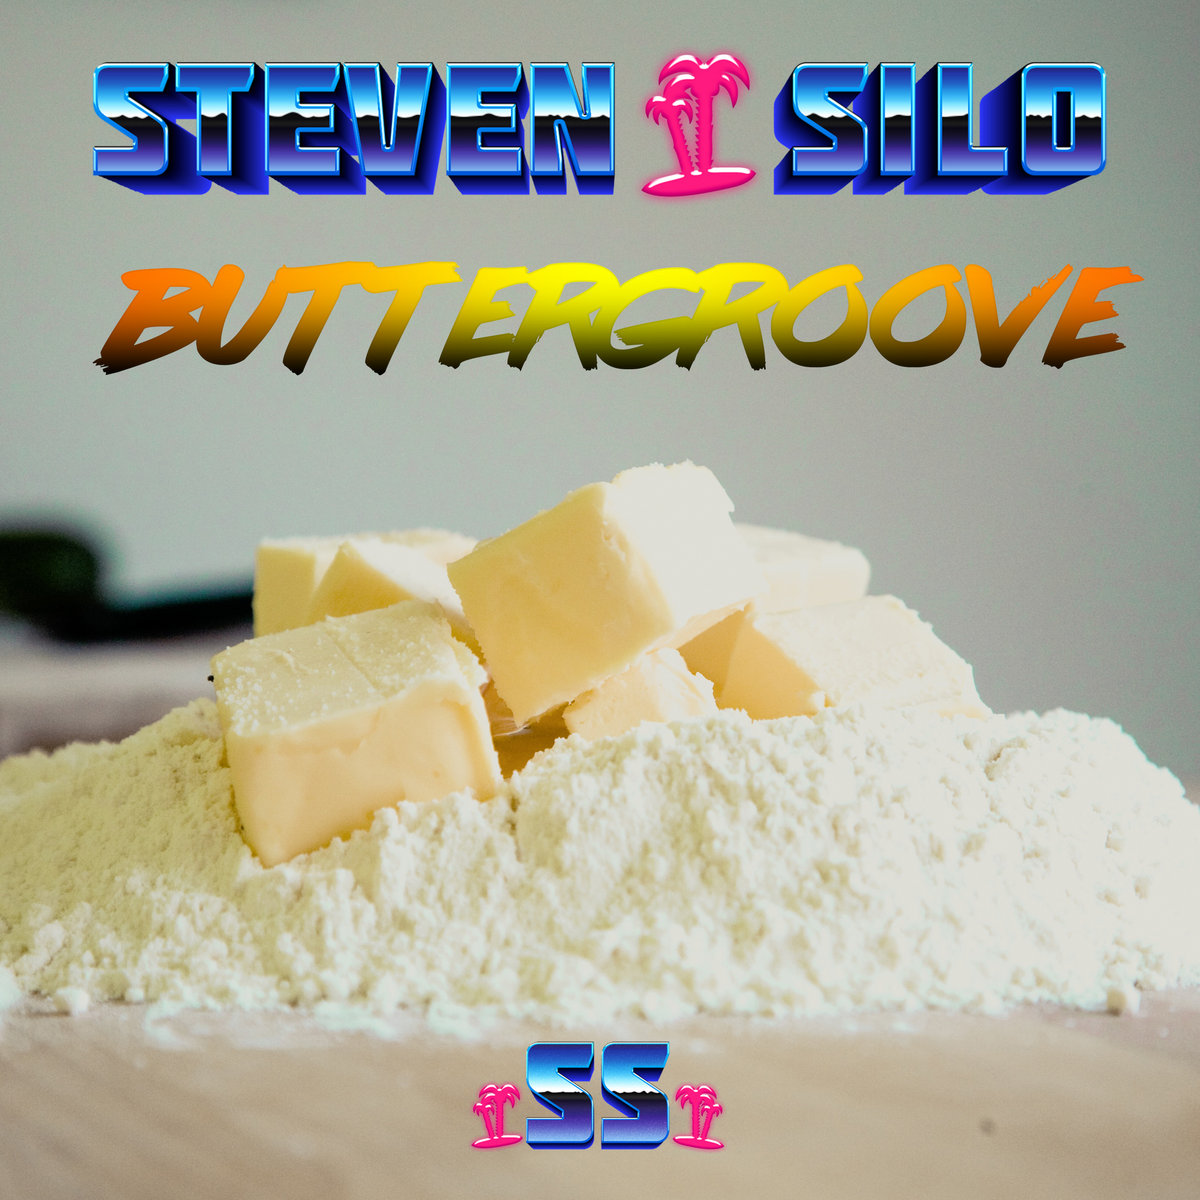 Buttergroove by Steven Silo